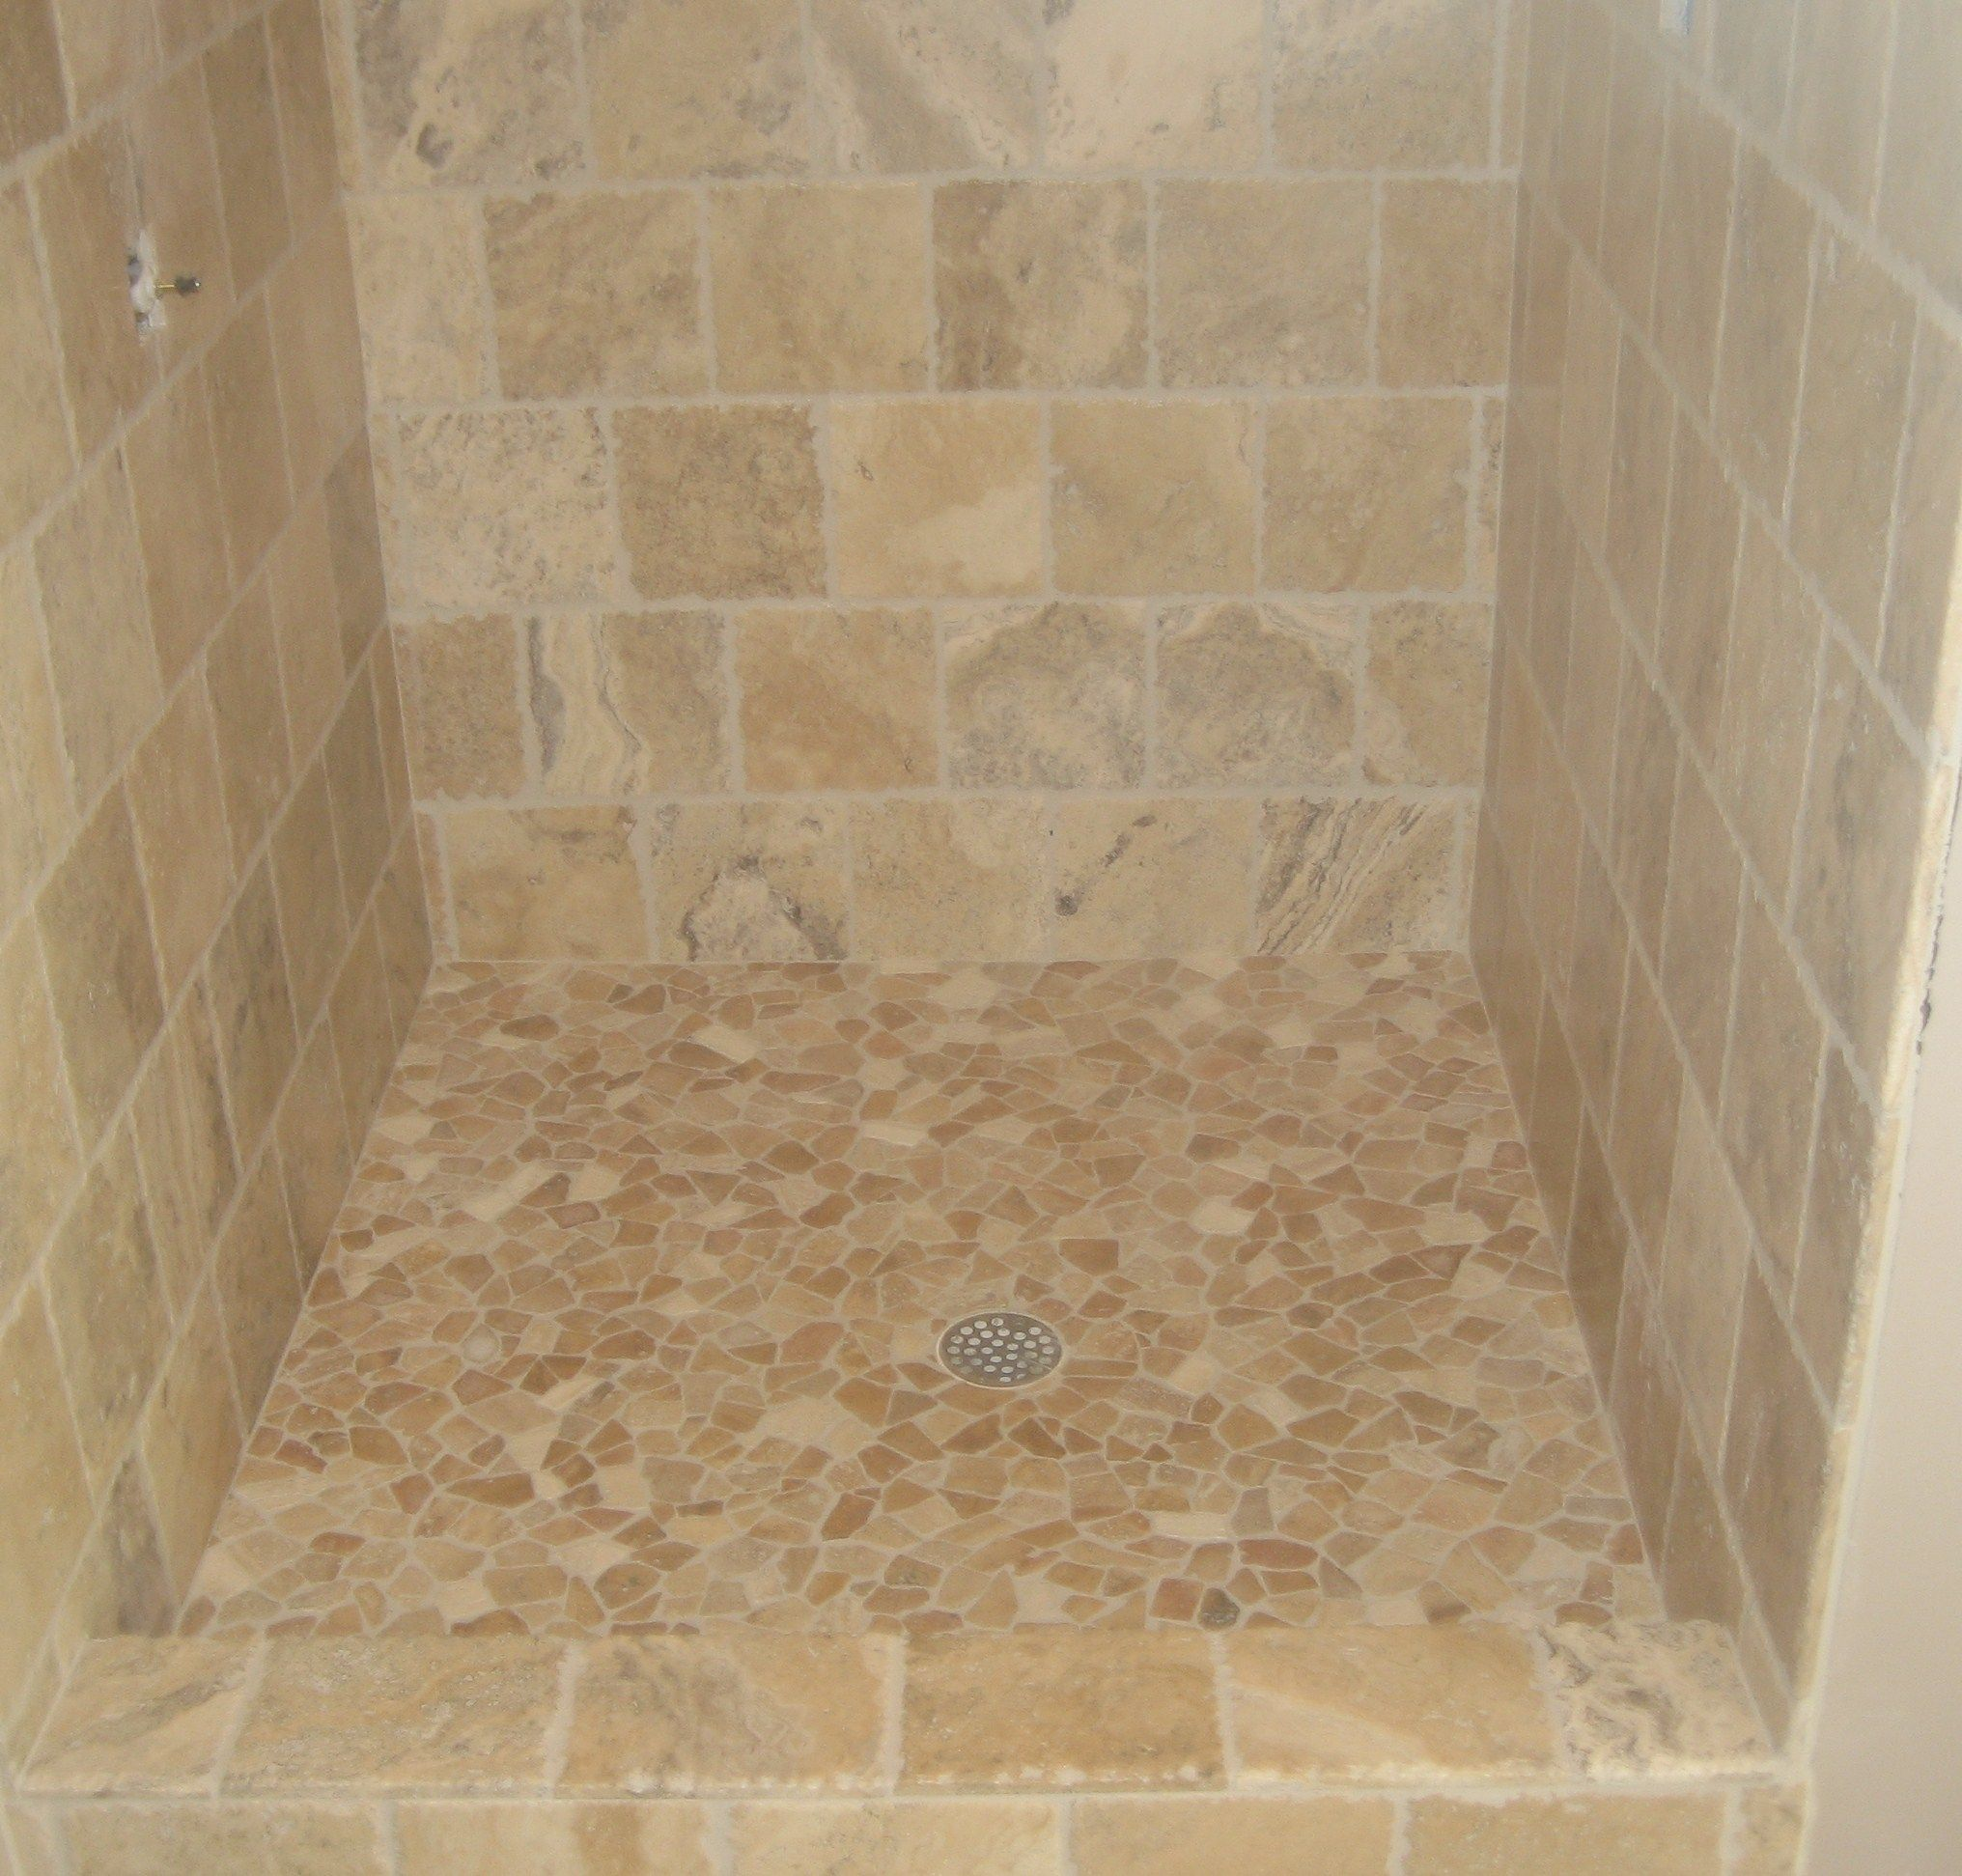 How to tile a shower floor with a shower pan and how to clean shower how to tile a shower floor with a shower pan and how to clean shower floor dailygadgetfo Images